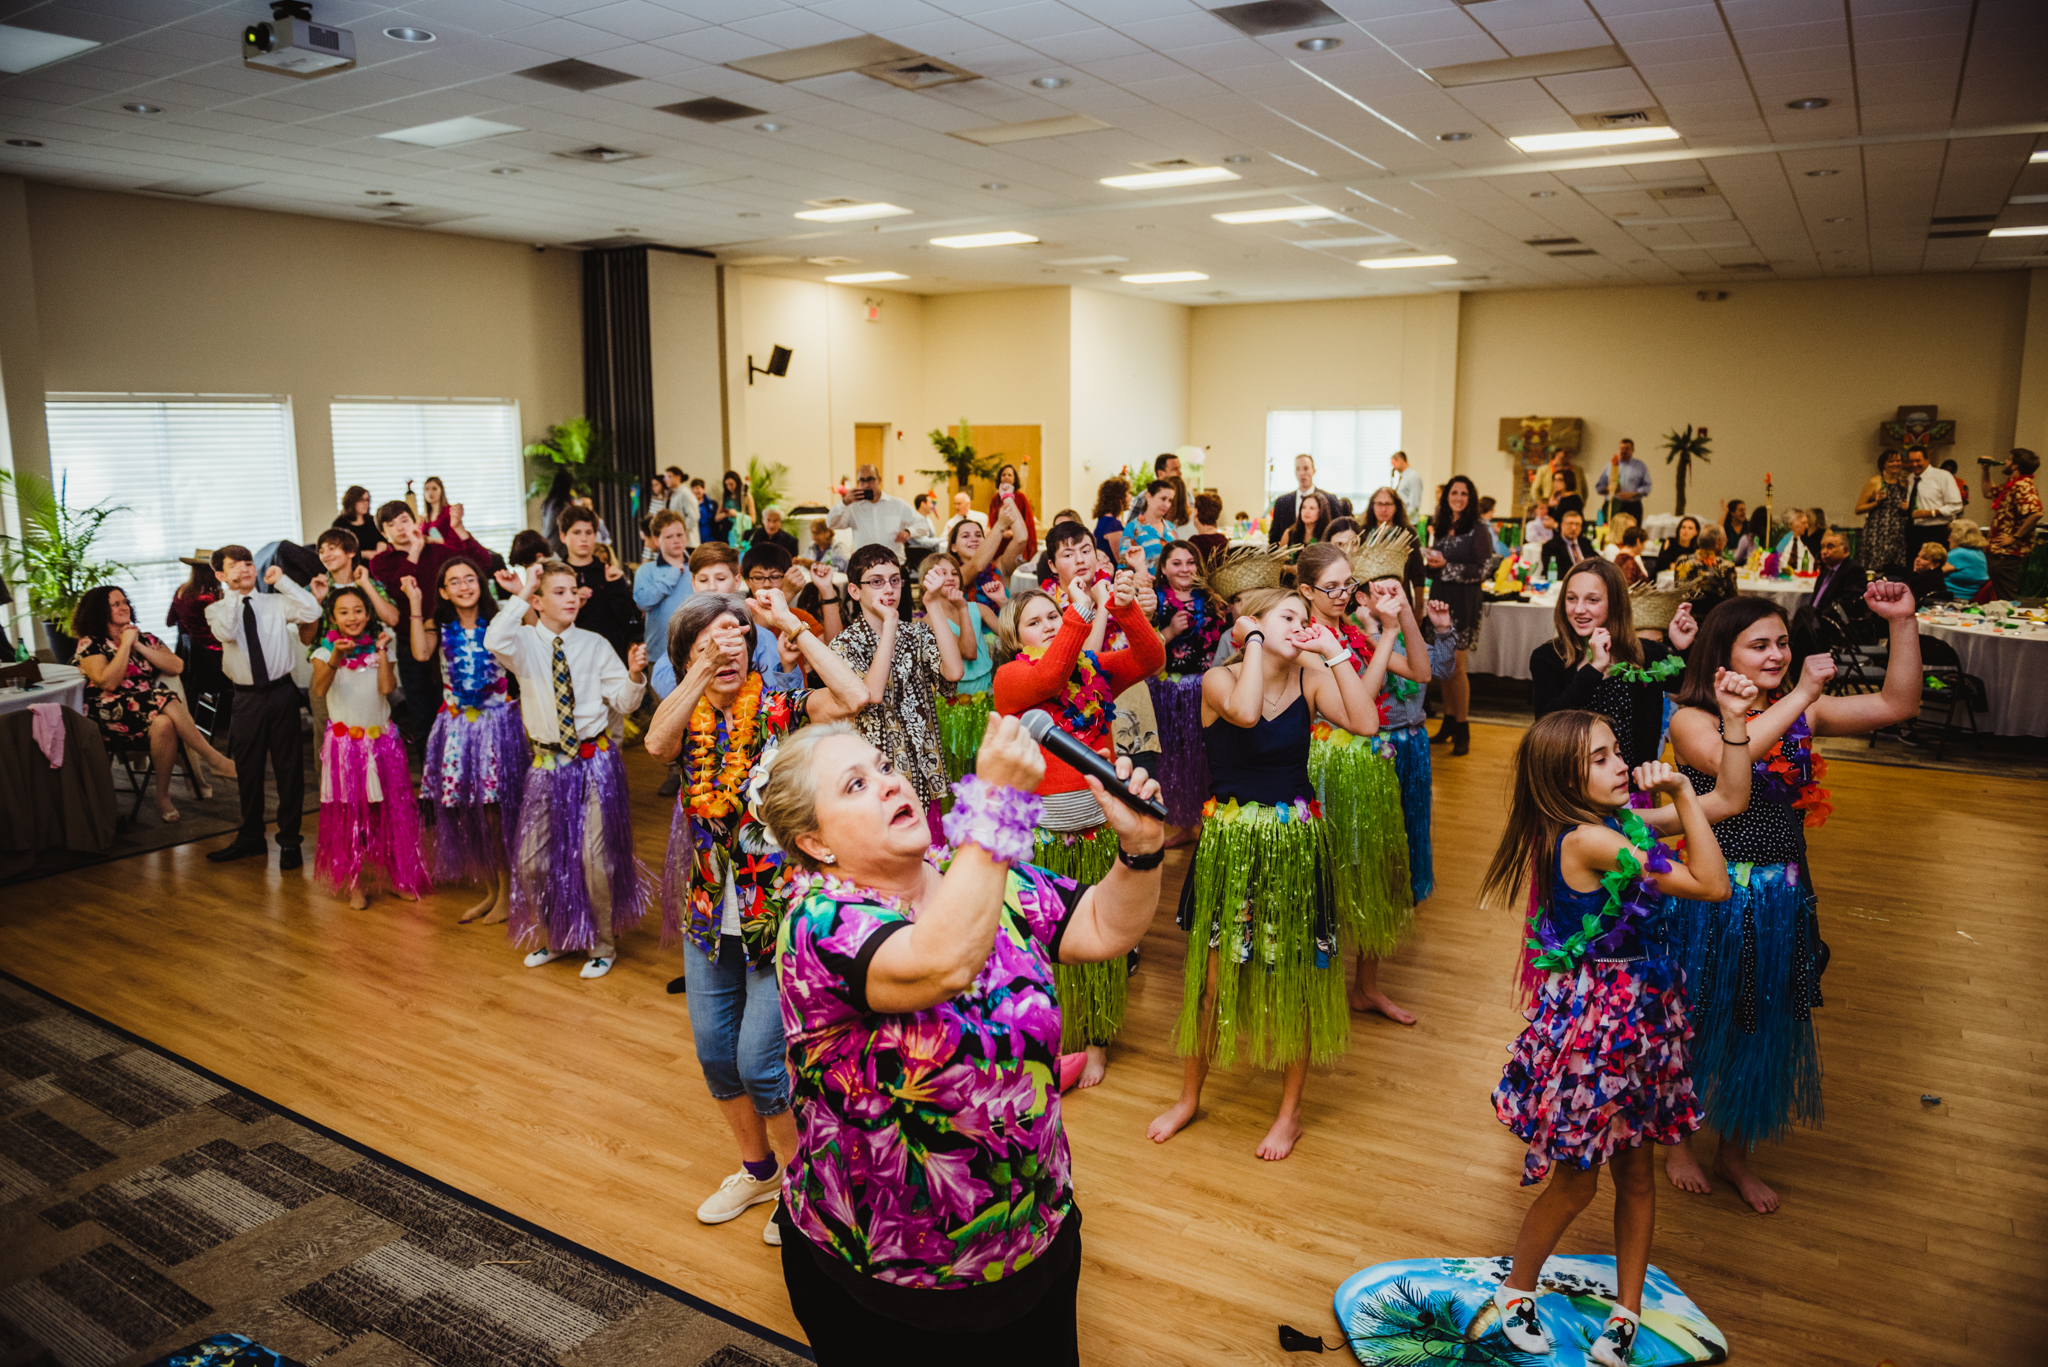 dancing-the-hula-with-a-professional-dancer-at-the-mitzvah-celebration.jpg